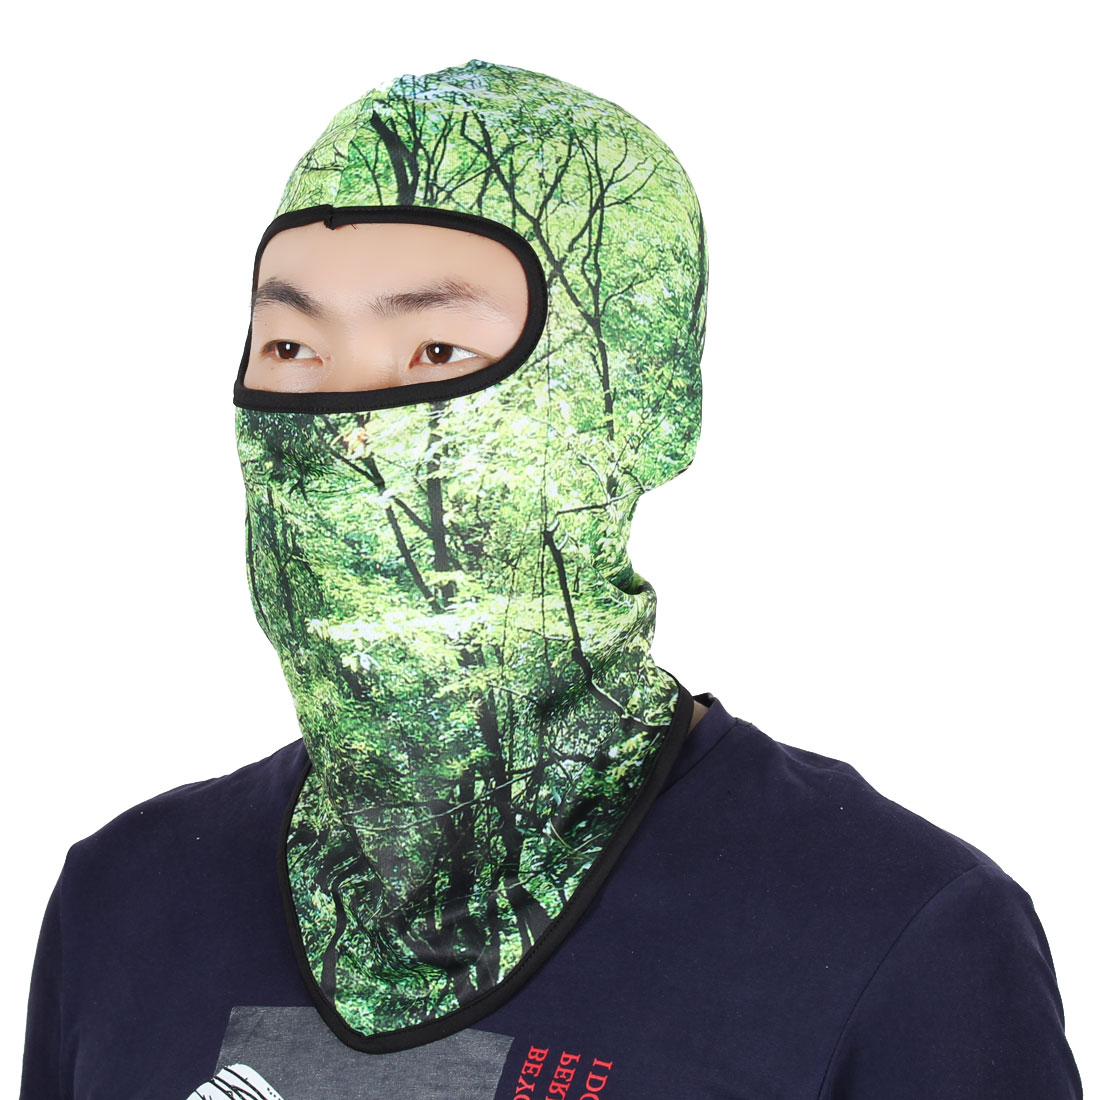 Full Coverage Mask Sports Cycling Biking Neck Protector Hood Helmet Balaclava by Unique-Bargains